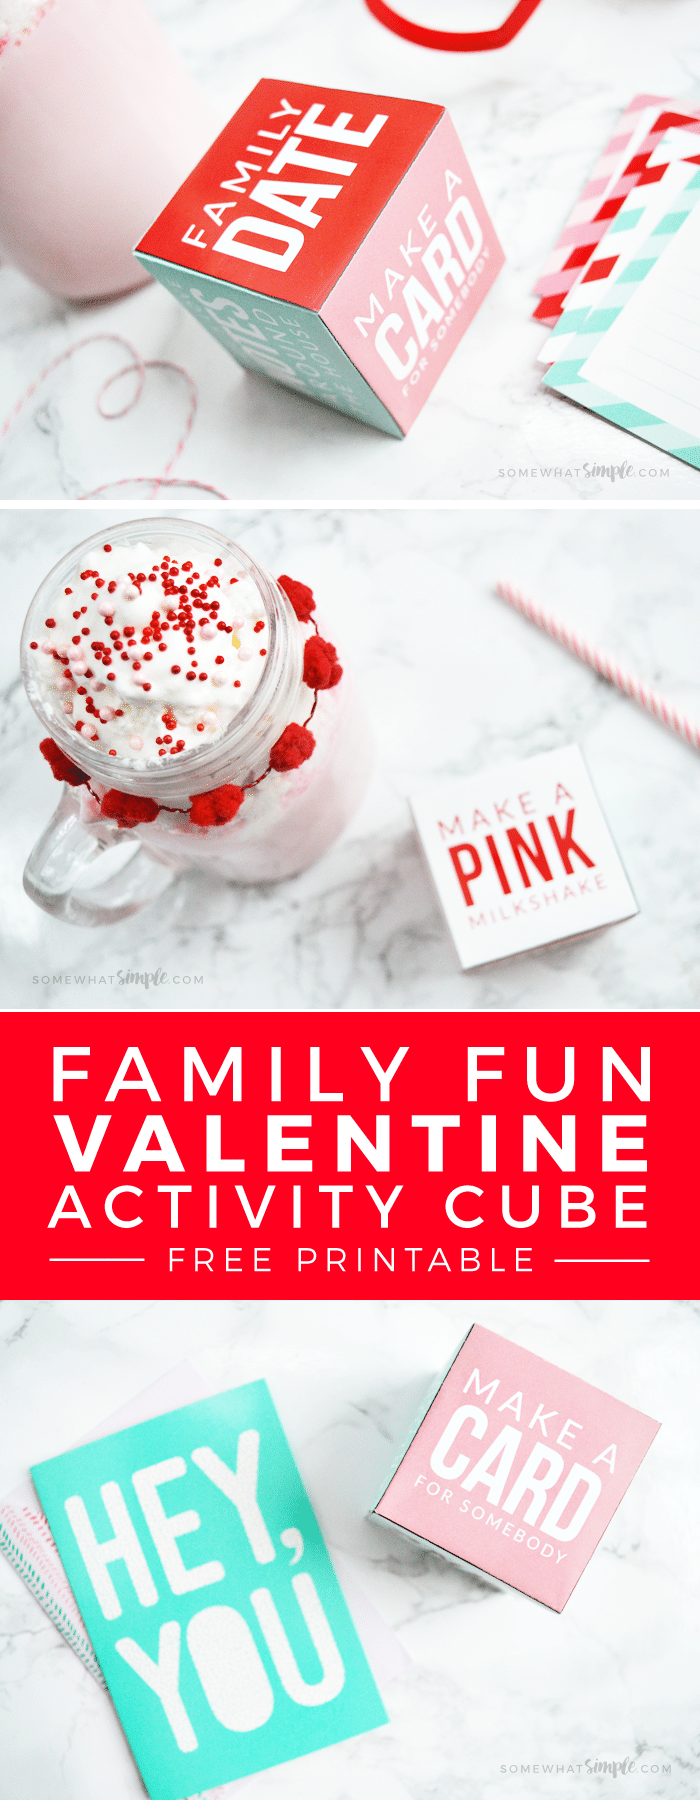 Valentine's Day Activity Cube - Print off this simple but fun FREE PRINTABLE activity cube for some family #ValentinesDay fun! #family #love